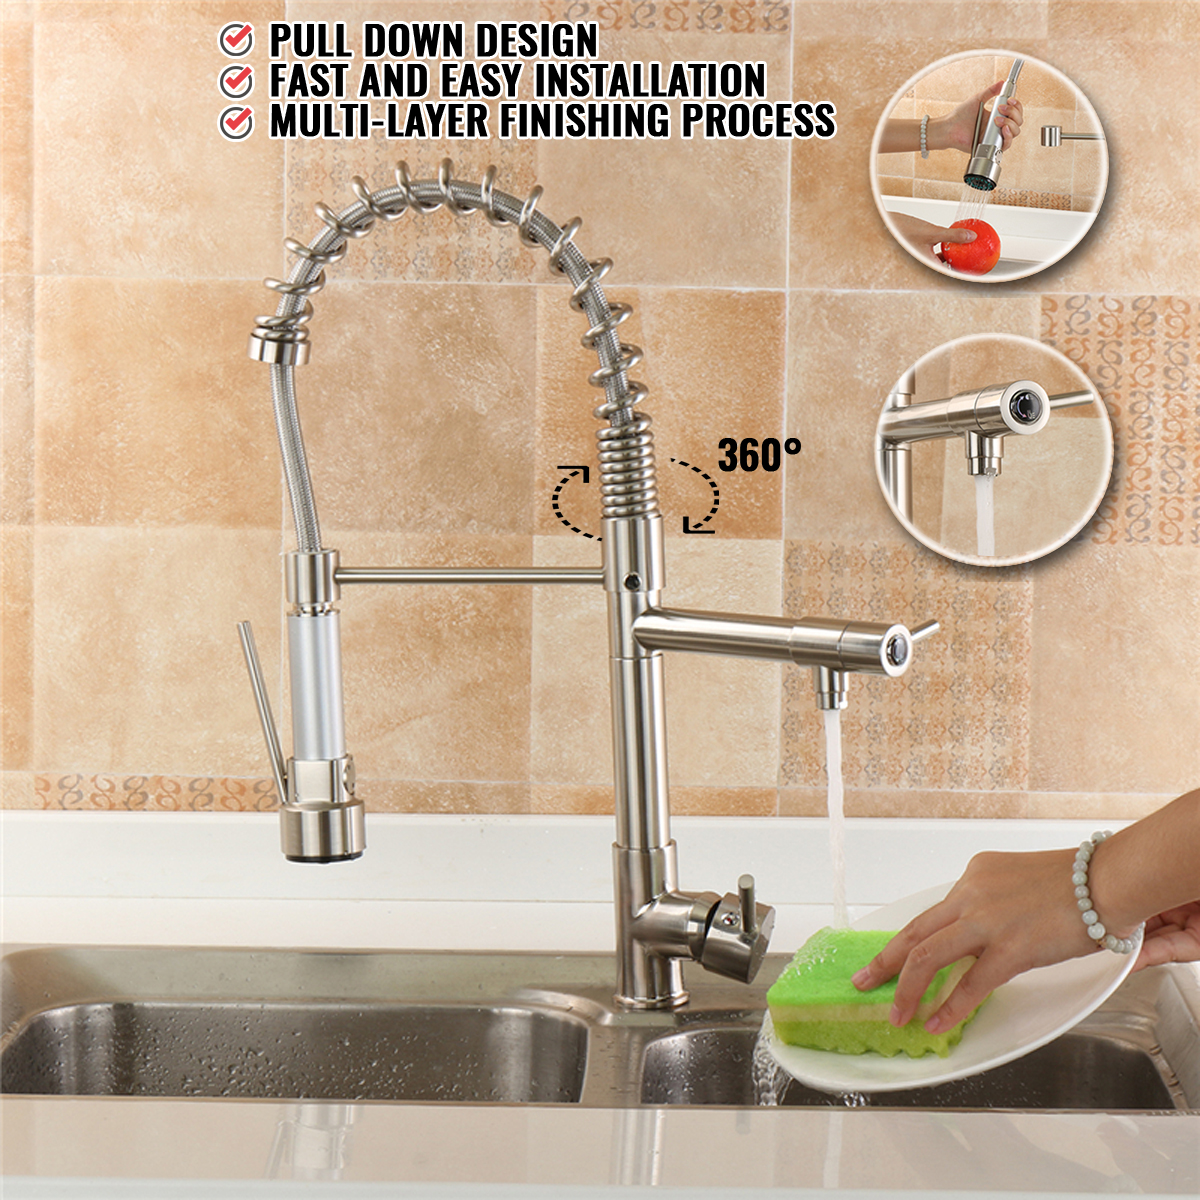 Pull Down Kitchen Faucet 360 Rotation Spout Single Hole Sink Mixer Taps Deck Mounted Hot And Cold Spring Silver Chrome FinishPull Down Kitchen Faucet 360 Rotation Spout Single Hole Sink Mixer Taps Deck Mounted Hot And Cold Spring Silver Chrome Finish